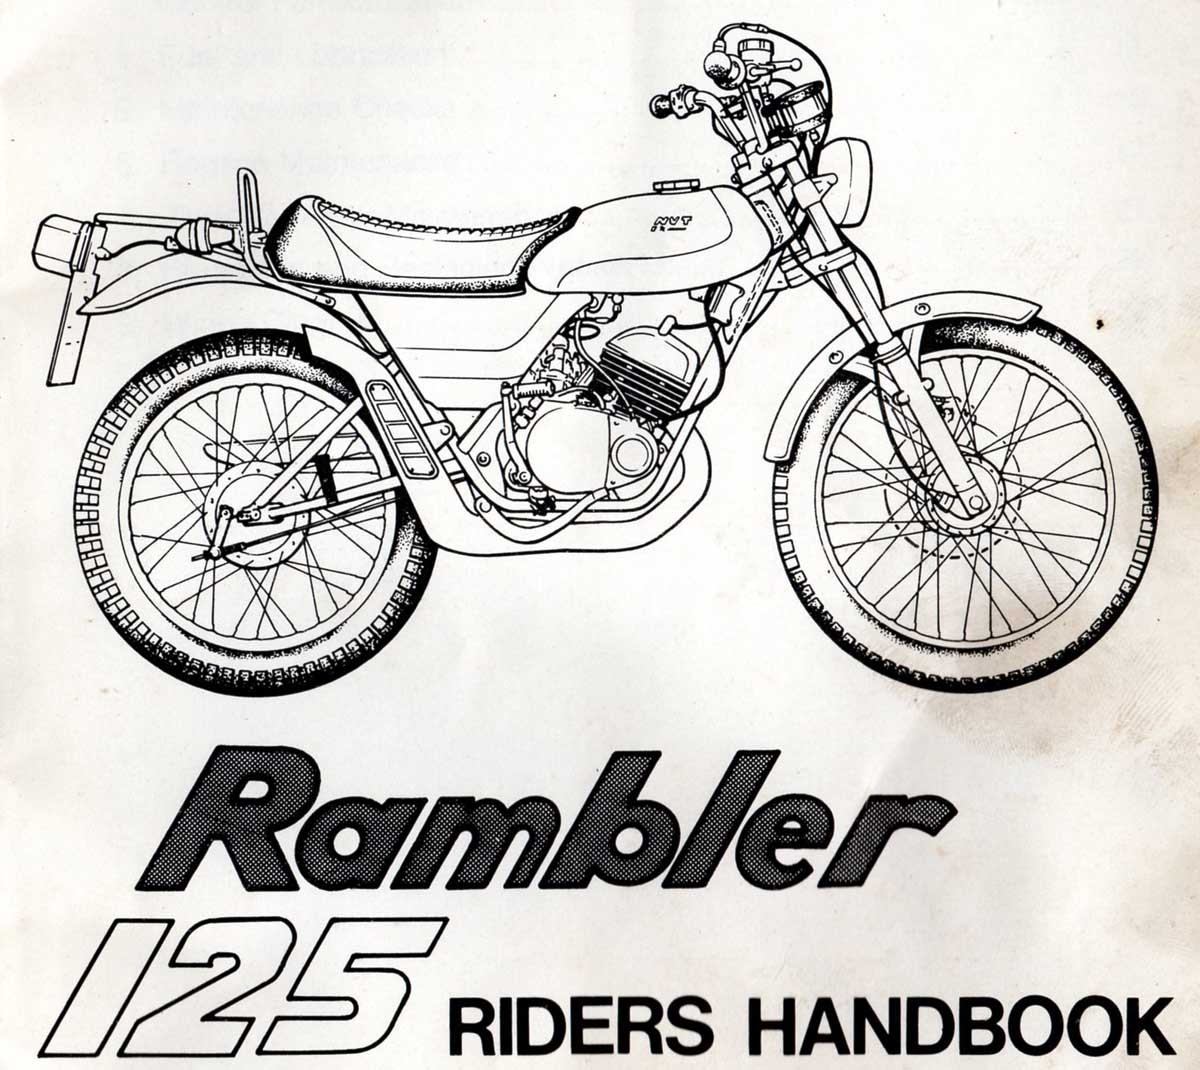 nvt riders handbook wiring diagram my motorcycle  [ 1200 x 1070 Pixel ]